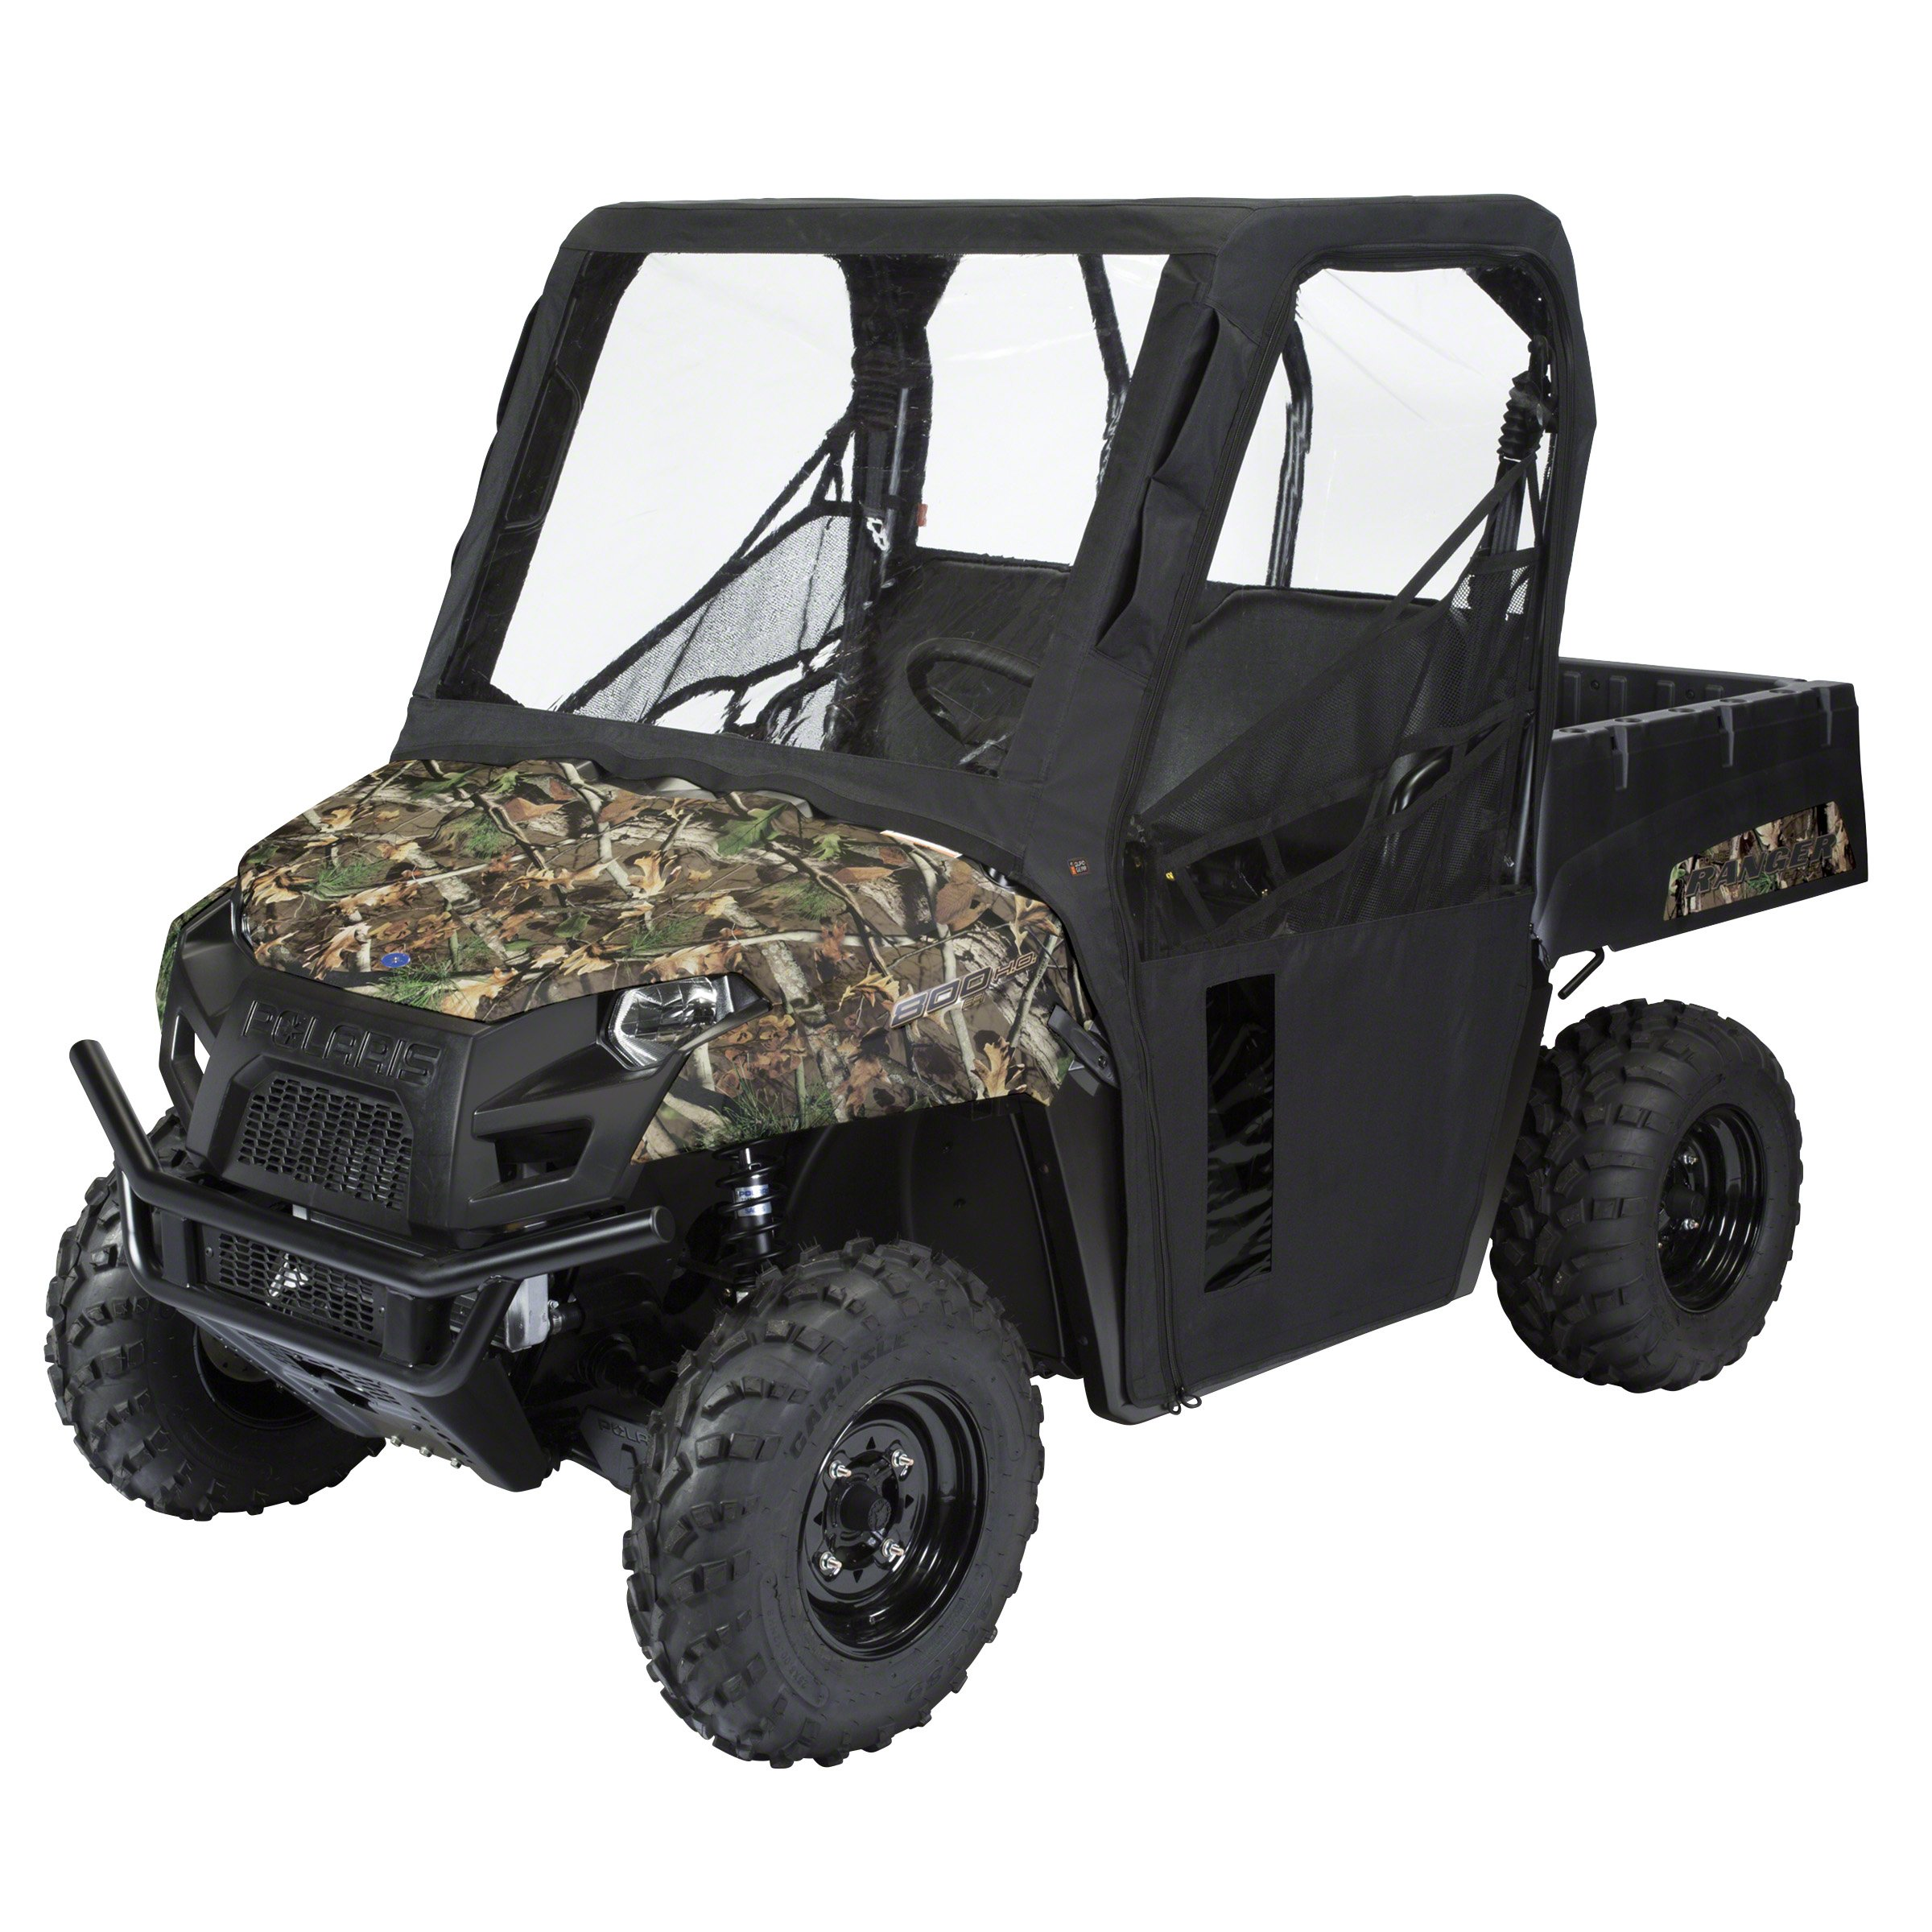 Classic Accessories 18-020-010401-00 QuadGear Black UTV Cab Enclosure Fits Kawasaki Teryx by Classic Accessories